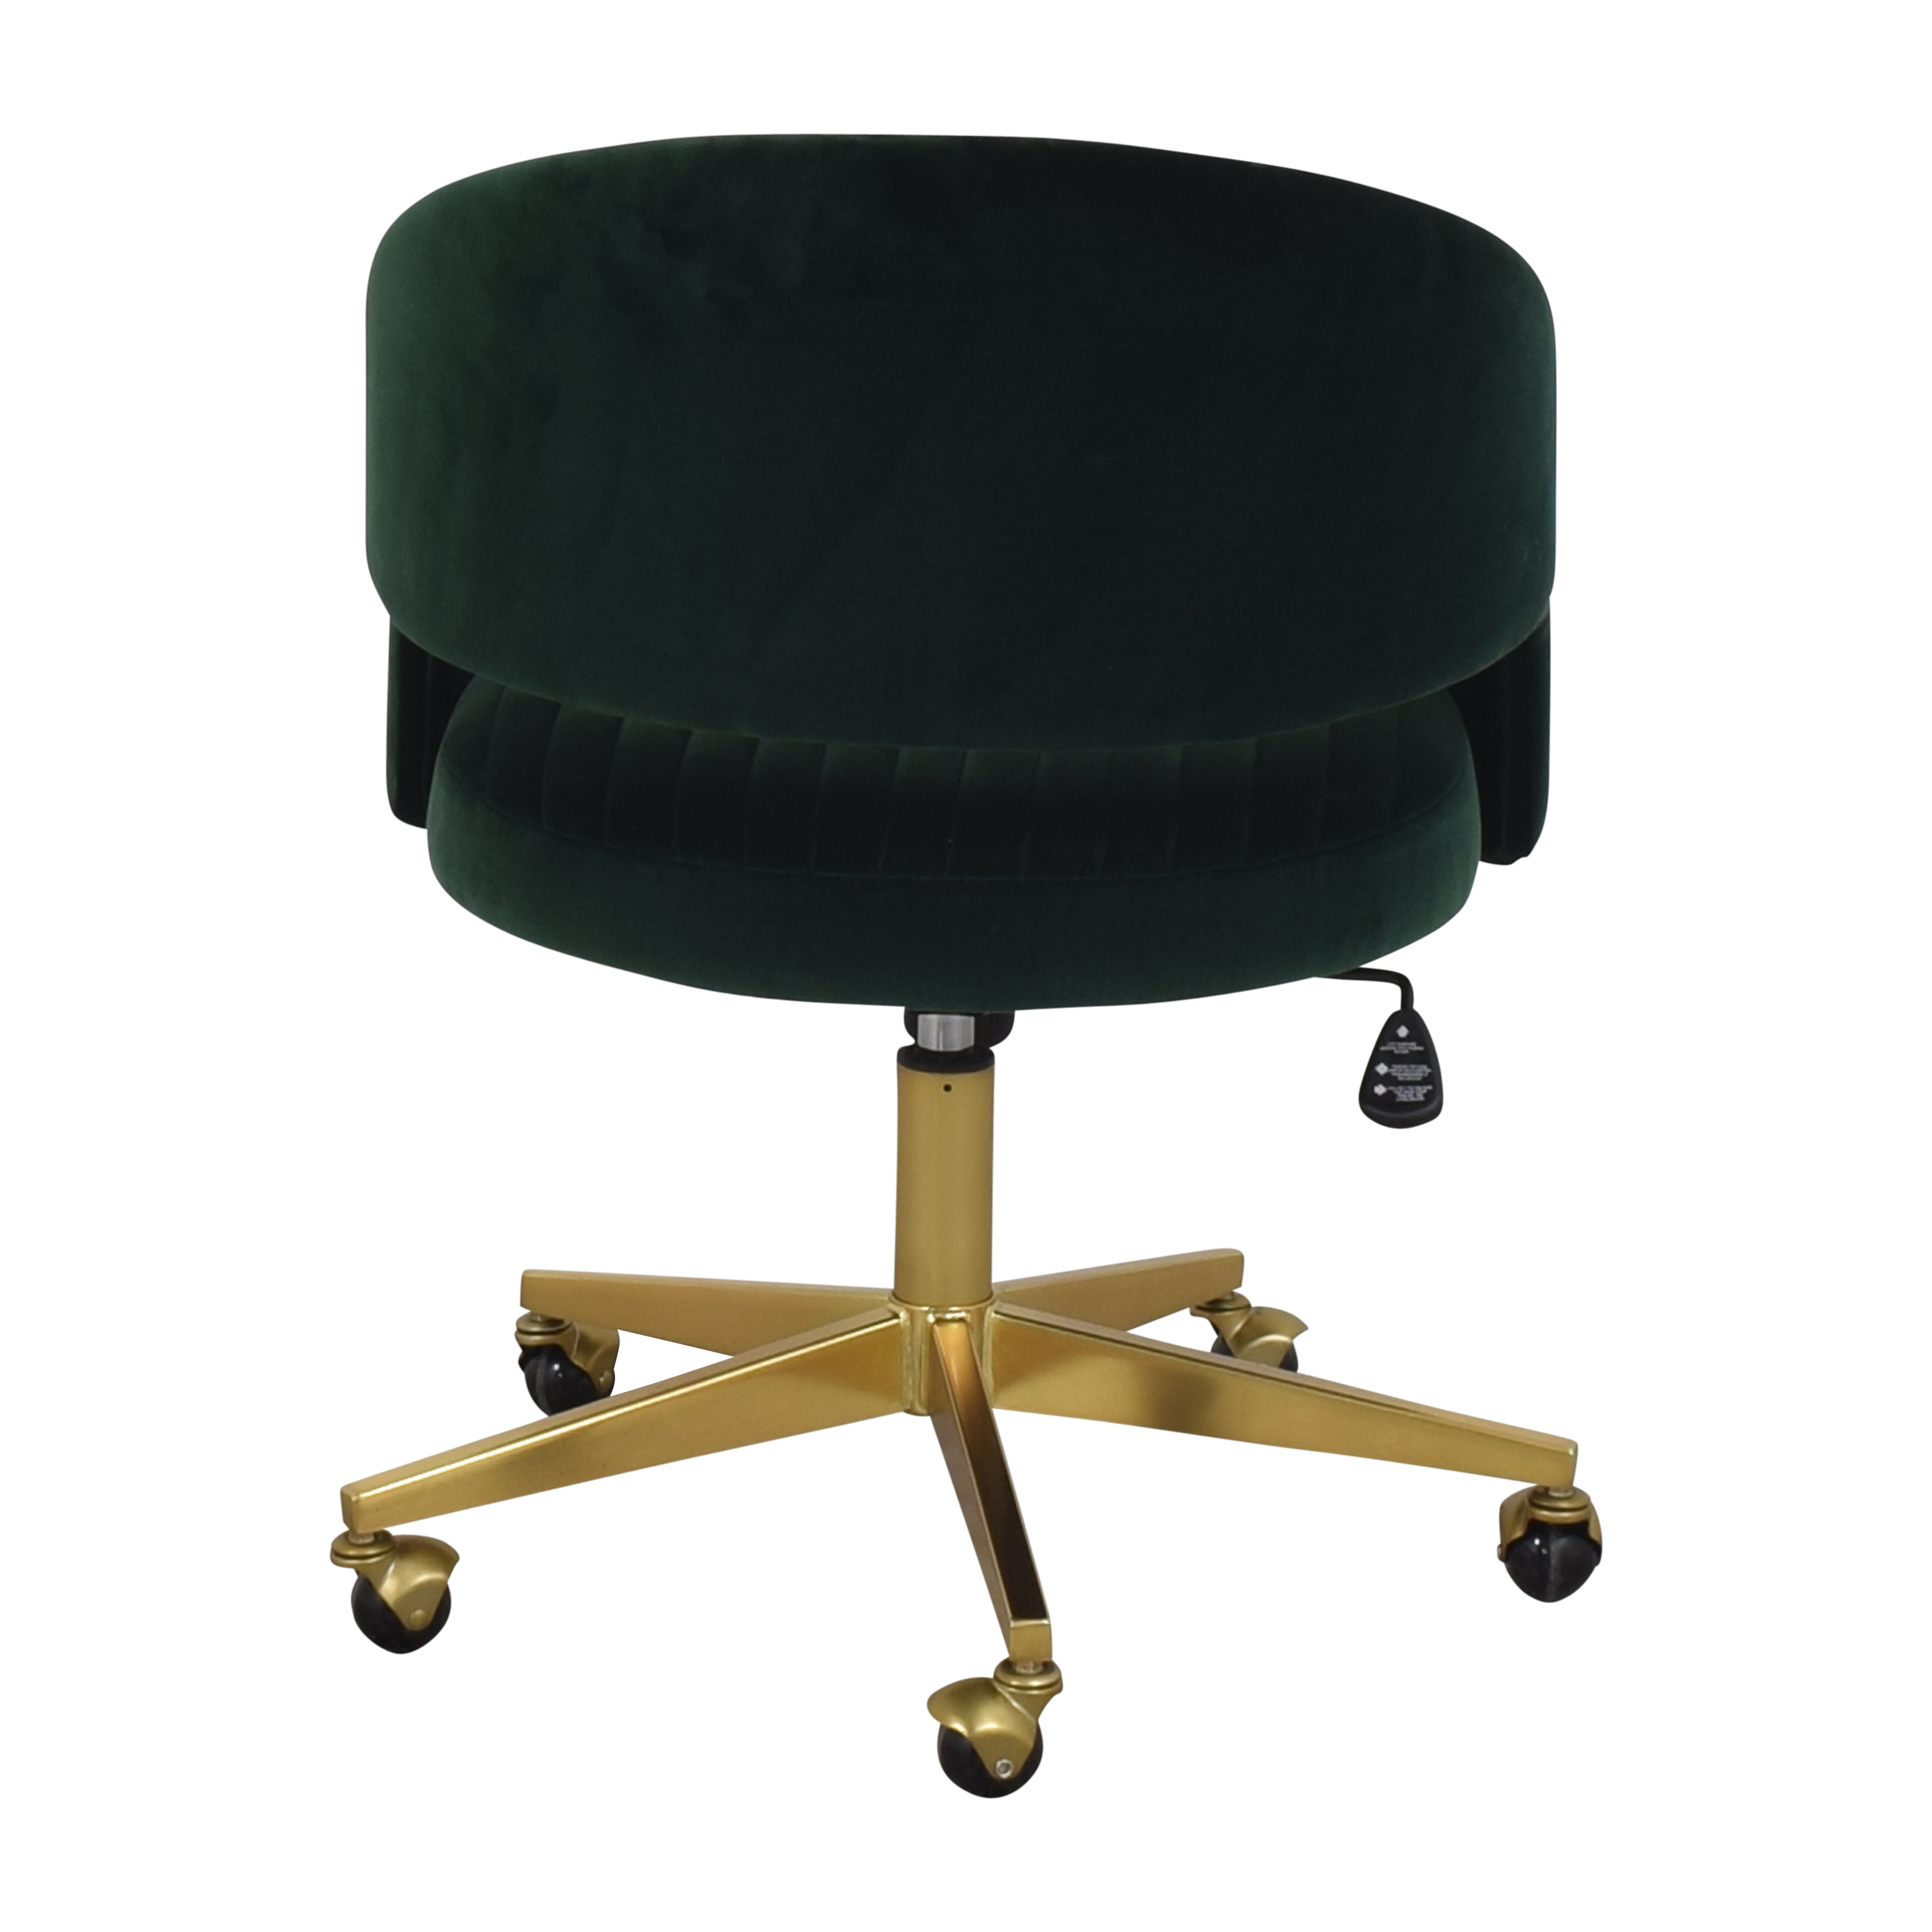 CB2 CB2 Channel Office Chair for sale